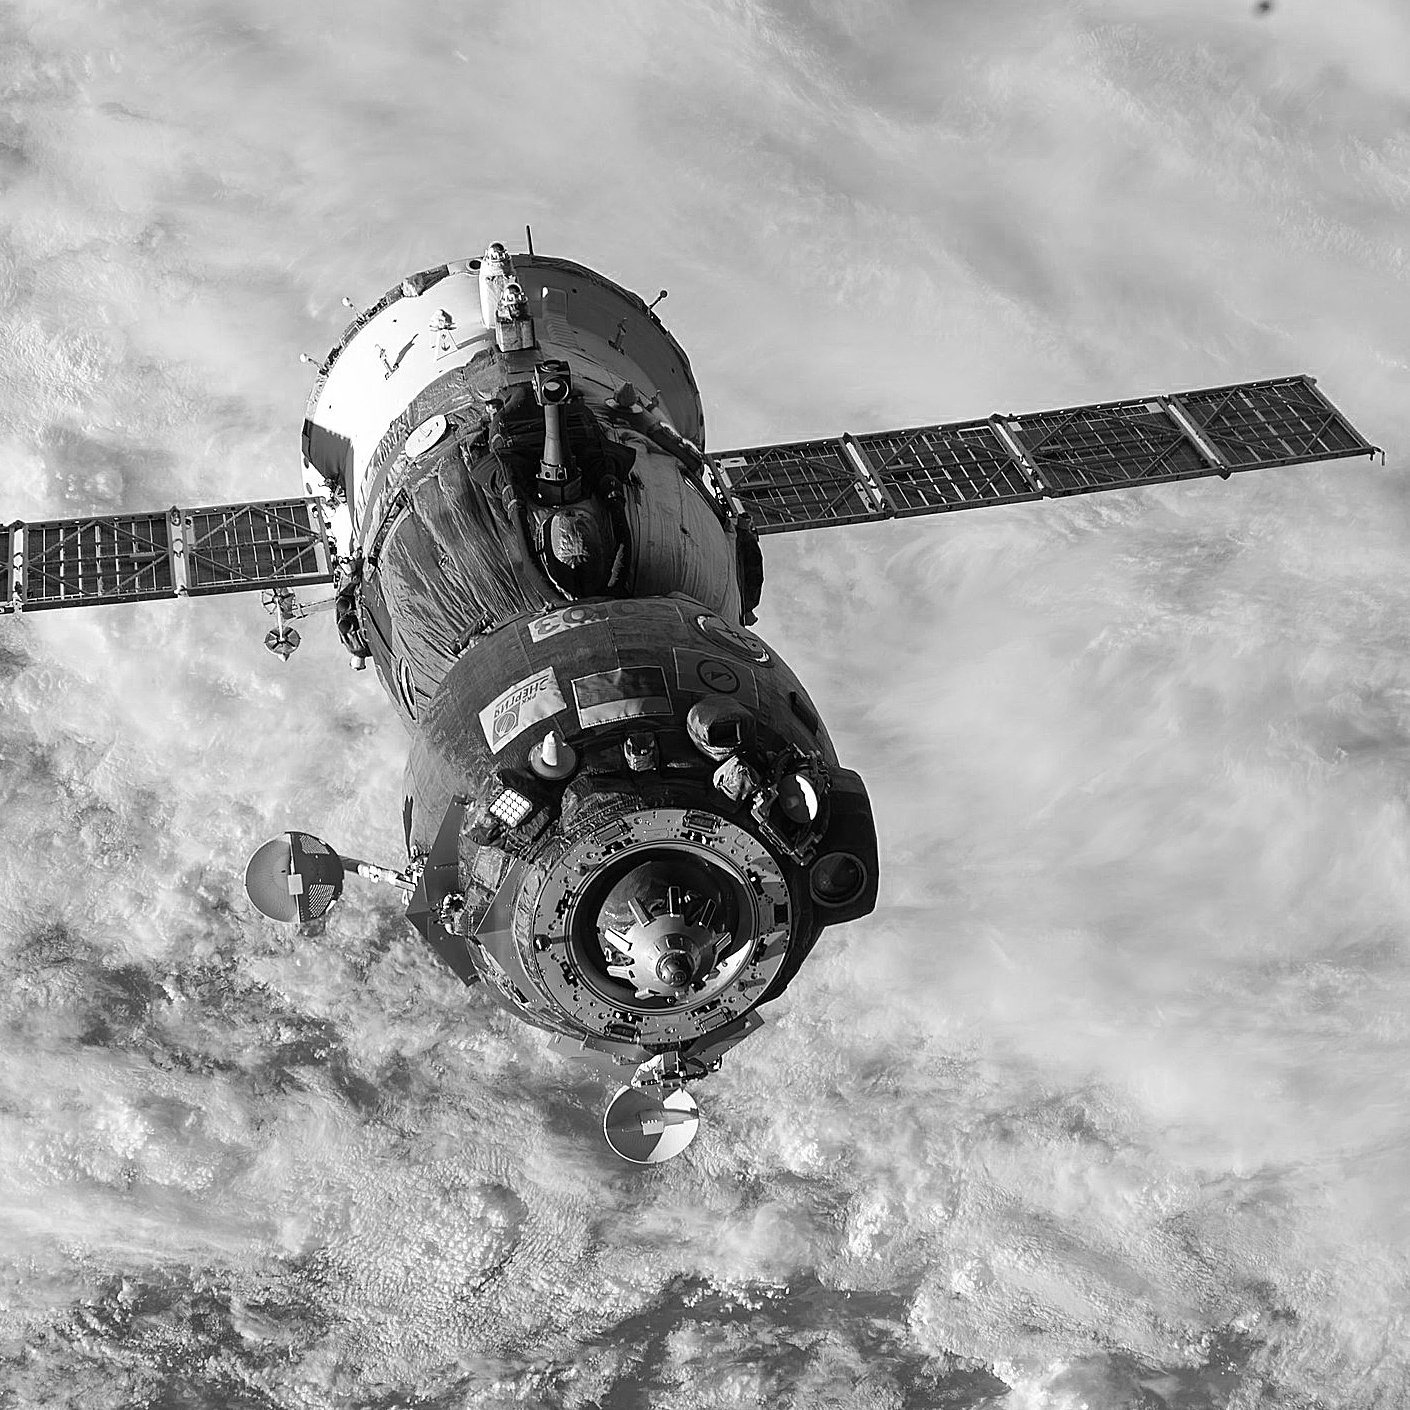 ISS-44 Soyuz TMA-15M spacecraft undocks.